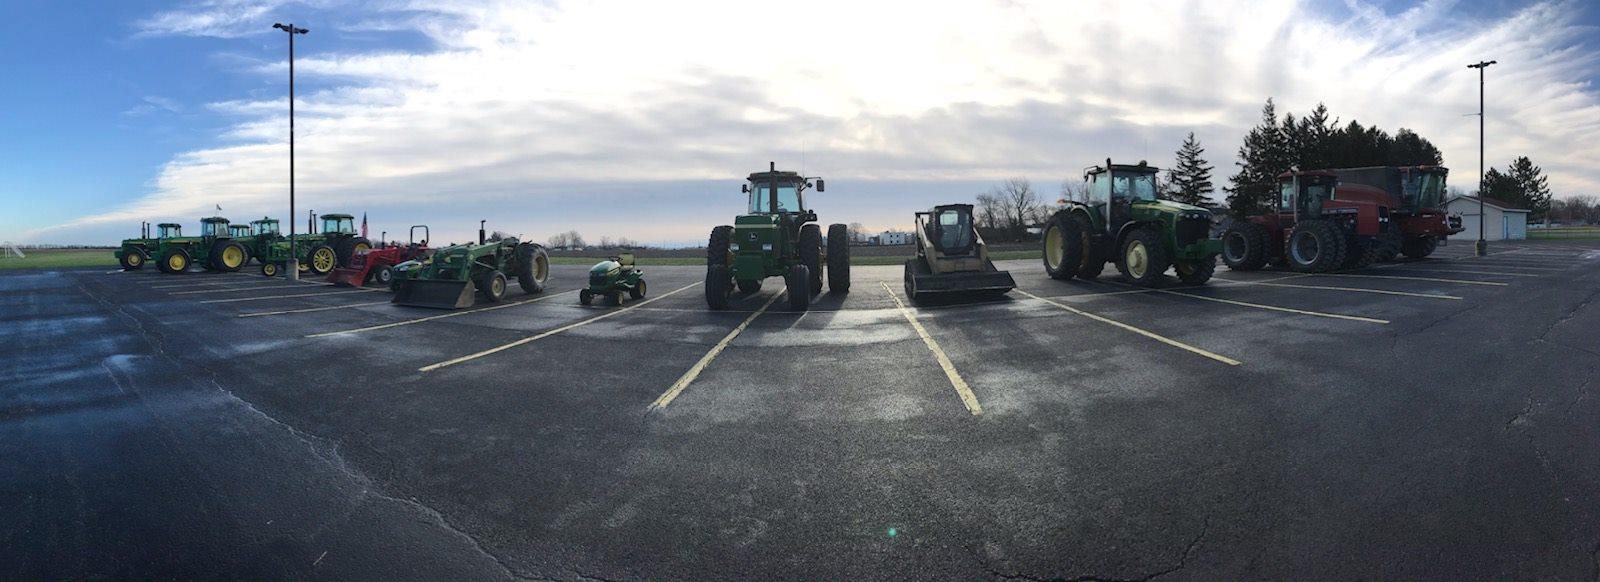 "DRIVE YOUR TRACTOR TO SCHOOL - ""THE GP WAY"""